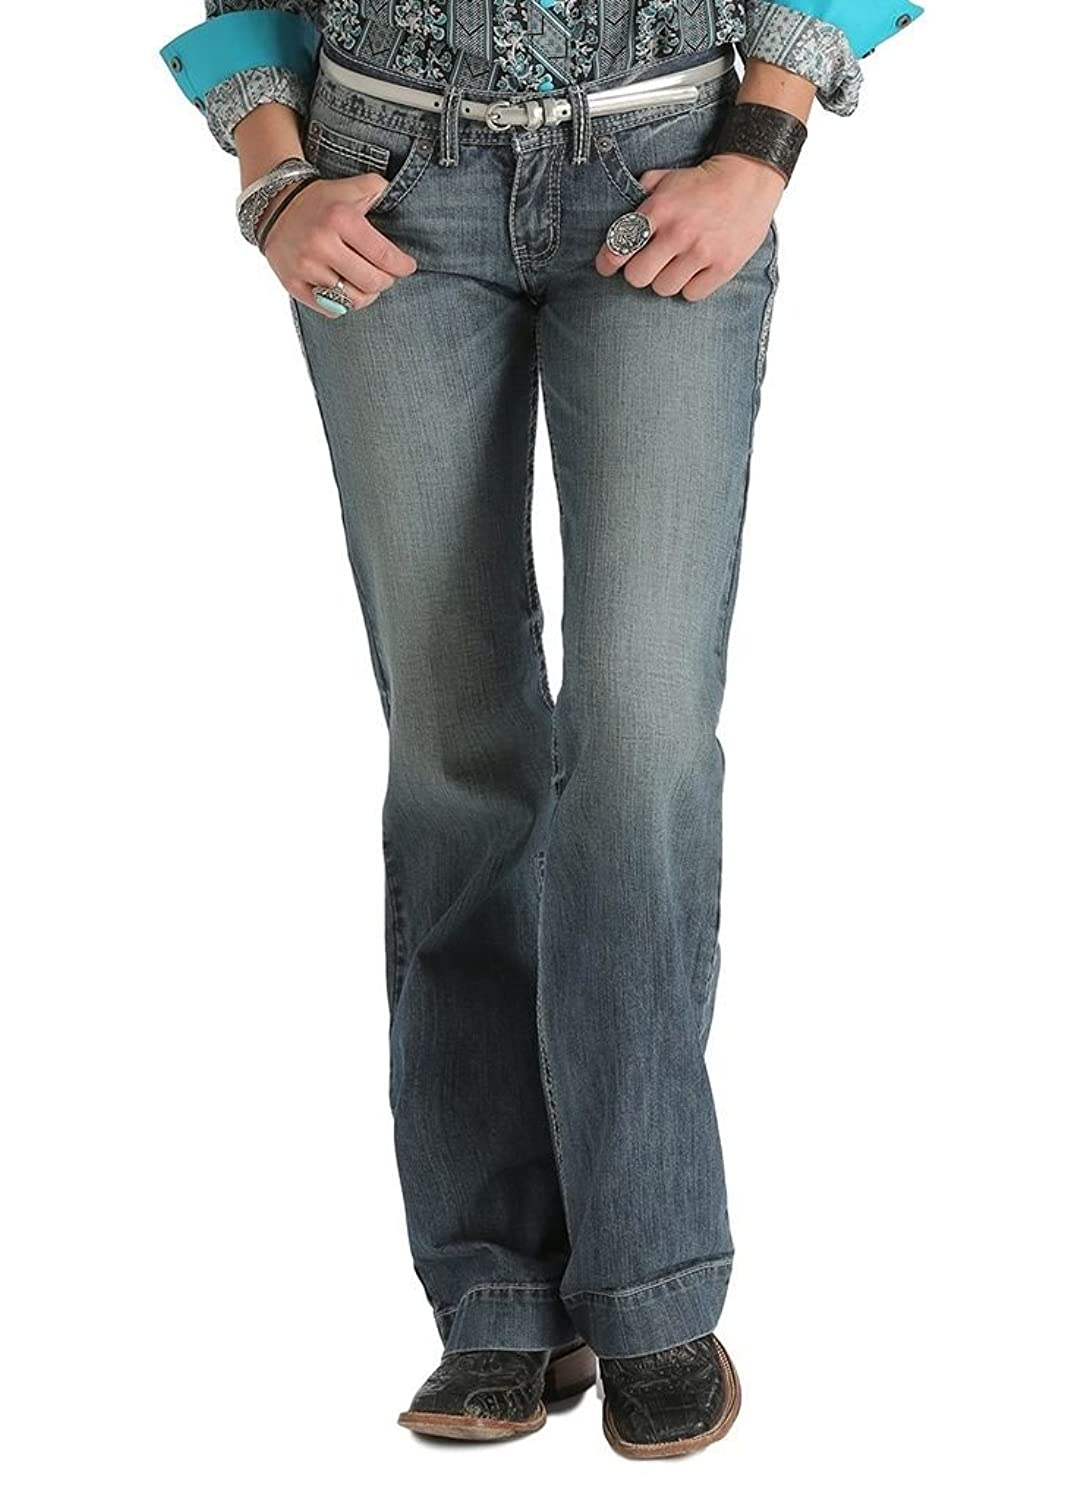 Cruel Girl Western Jeans Womens Jayley Rlx 17 Long Med Wash CB44054001